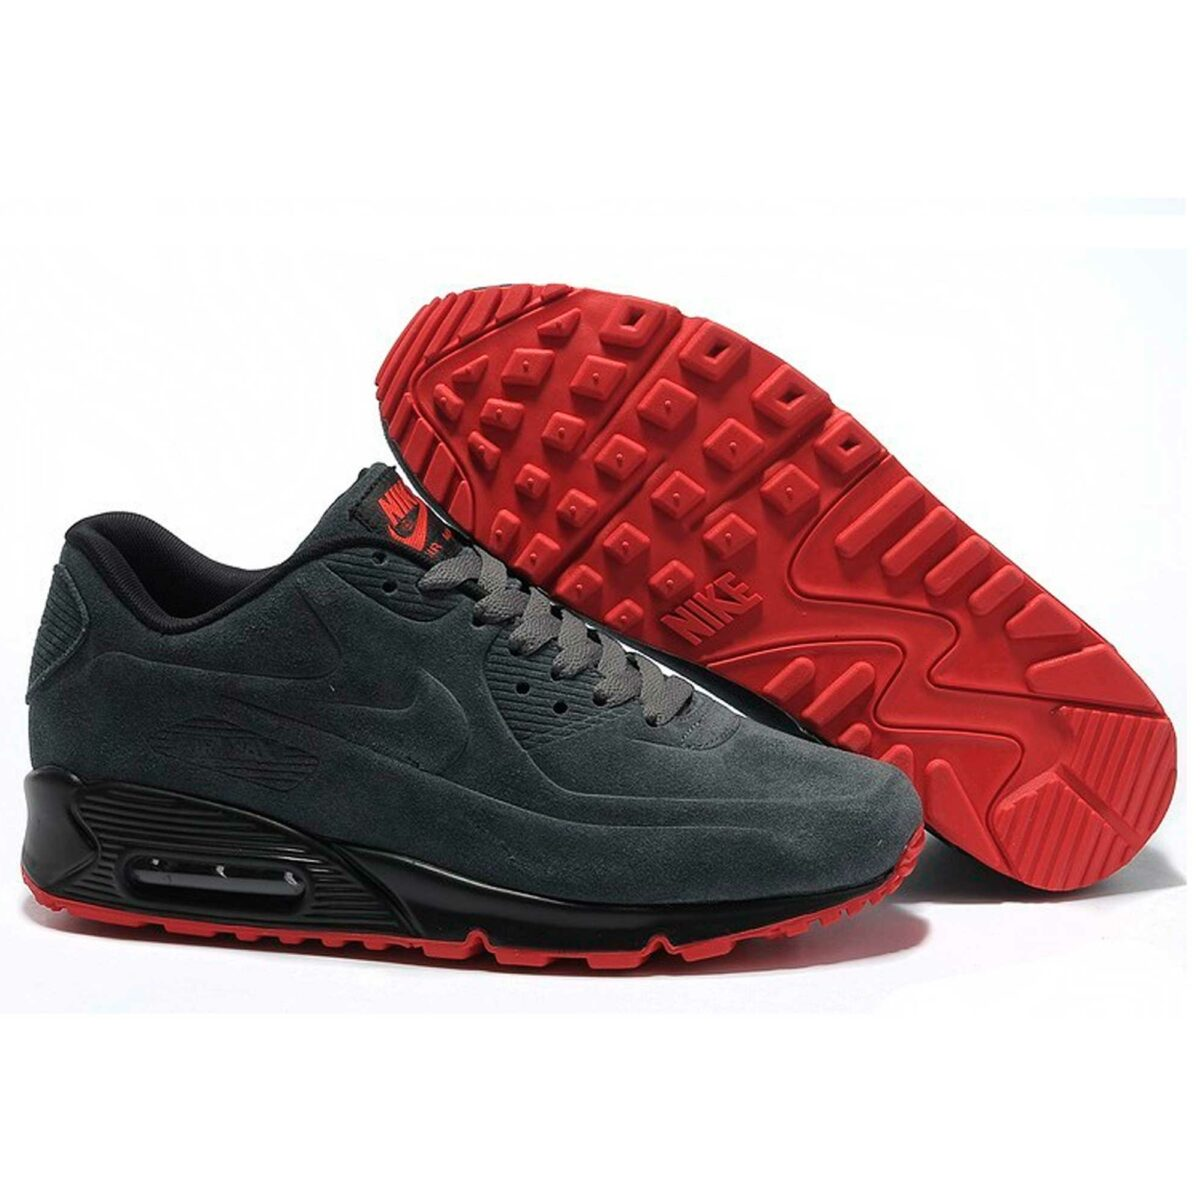 nike air max 90 VT grey red 472489-001 купить